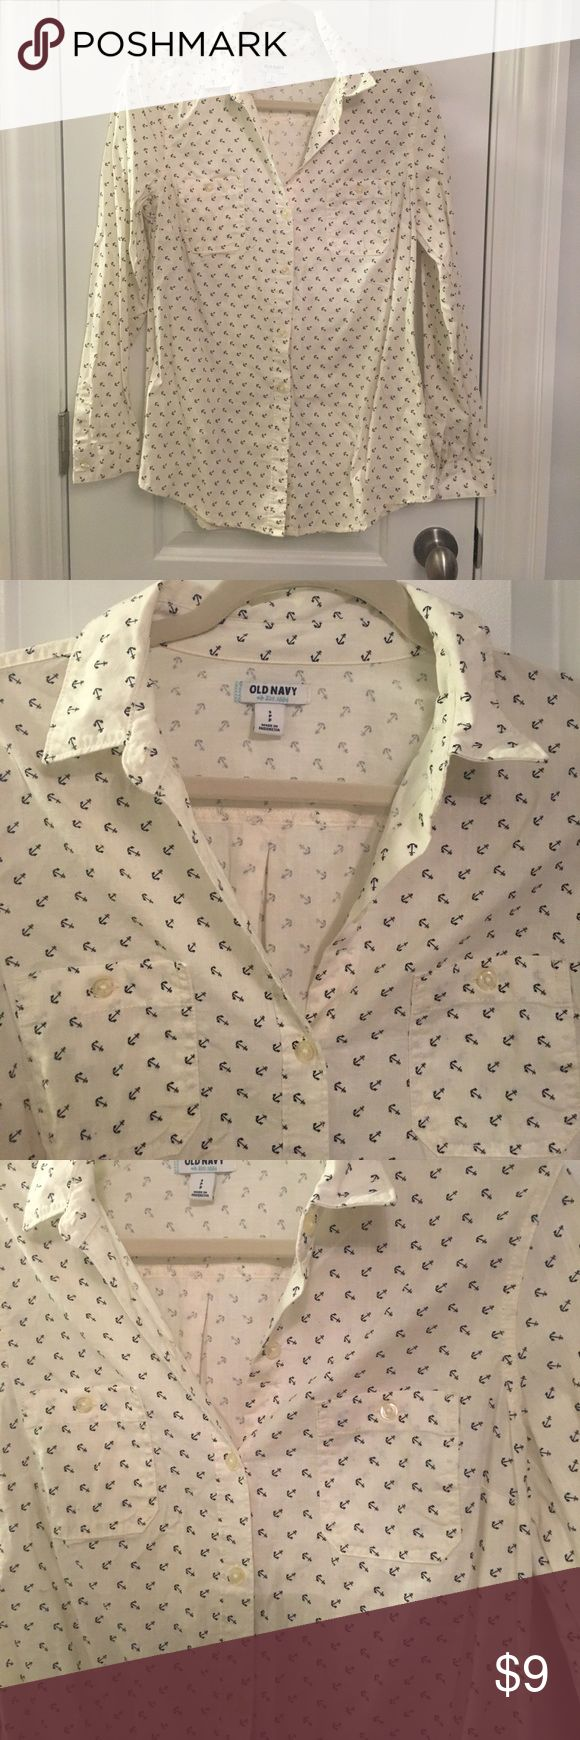 Anchor print button up blouse 100% Cotton. Old navy anchor print blouse. Old Navy Tops